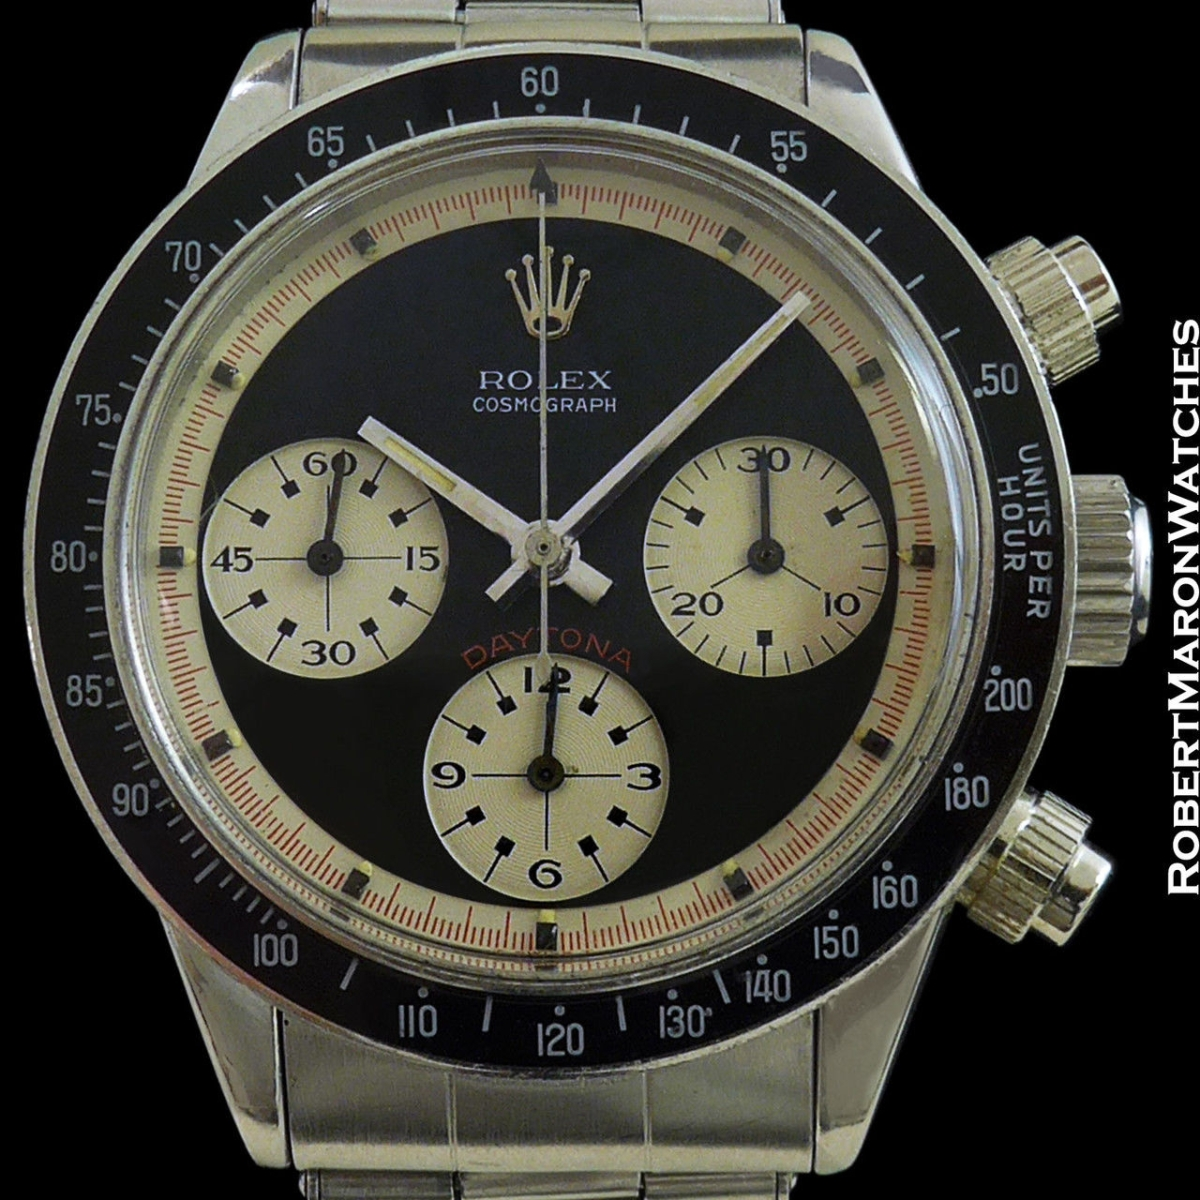 There S A 1965 Rolex Paul Newman Daytona For Sale On Ebay Right Now